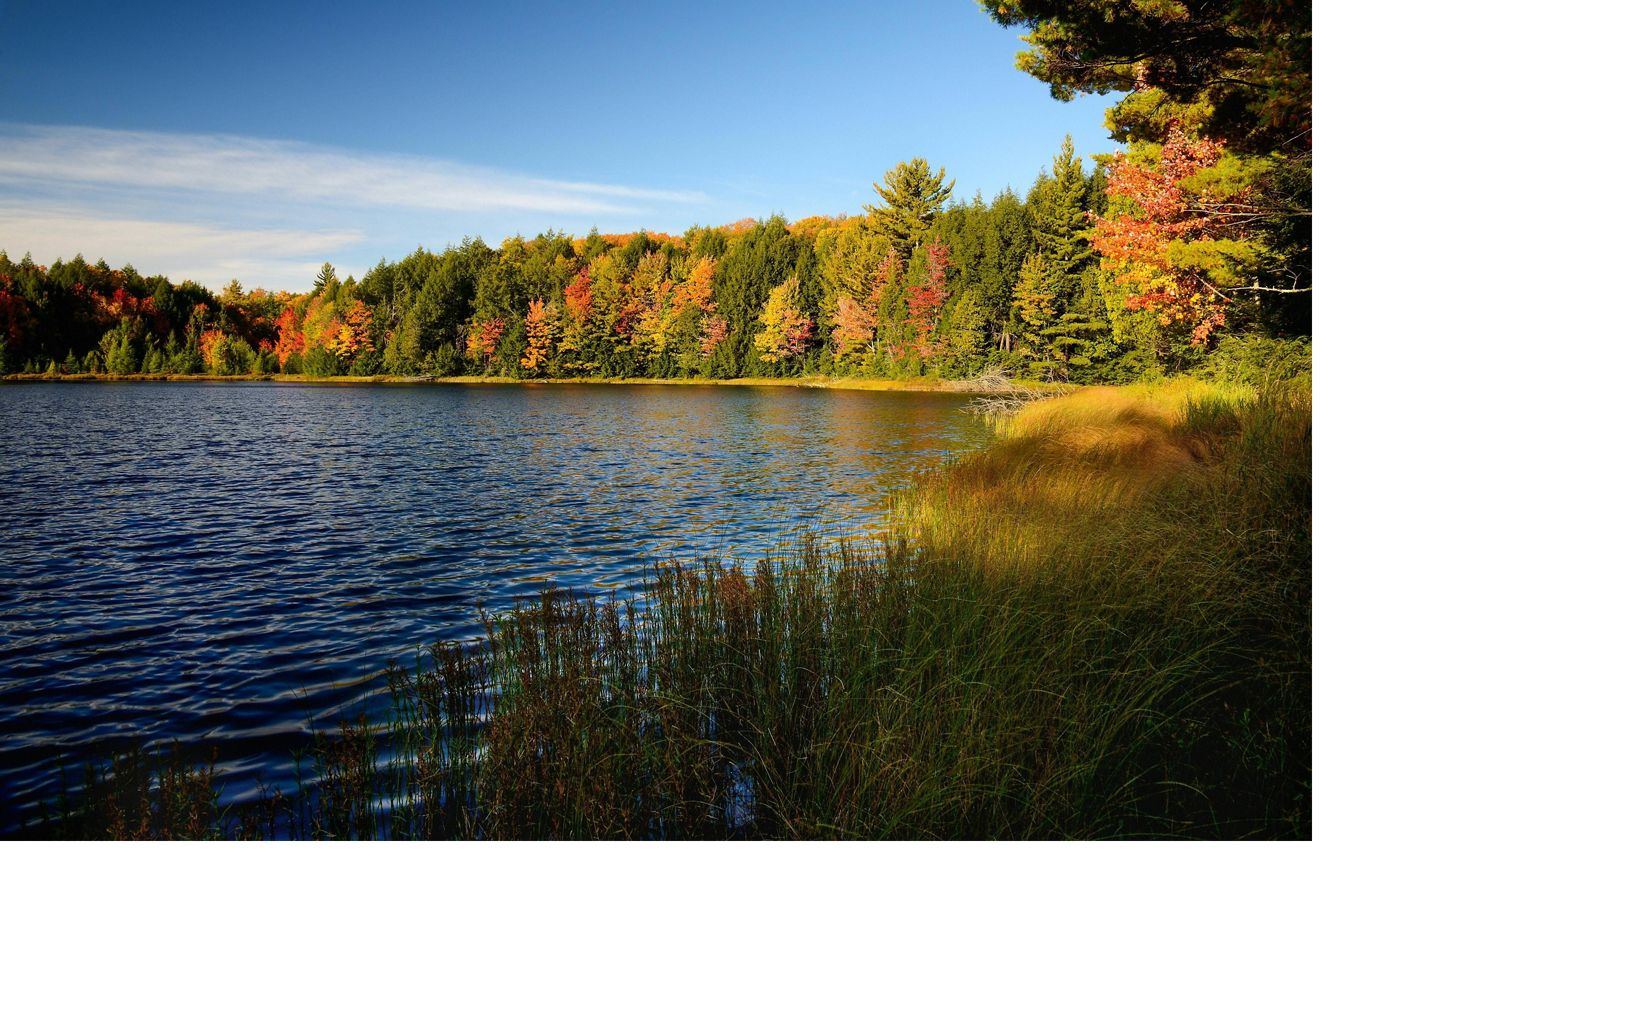 Red, orange and yellow fall colors mix with the green of the conifer trees that fringe a blue lake with wetlands in the foreground and blue sky overhead.